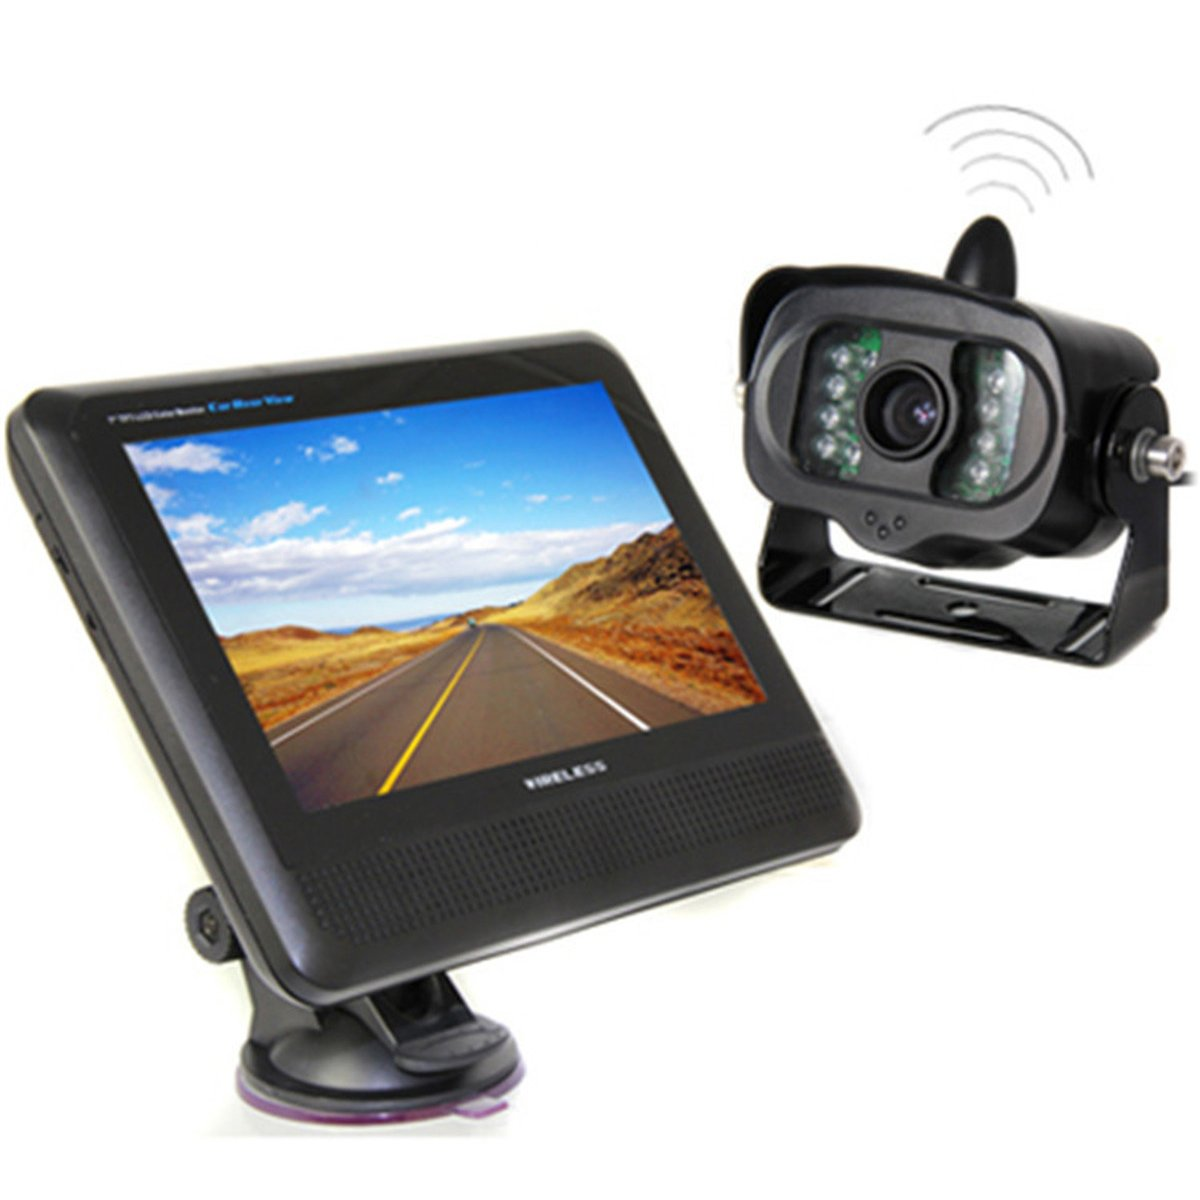 Waterproof 7'' LCD Reversing Camera Suction Cup Screen Display with Night Vision Wireless Infrared Rearview Camera Set